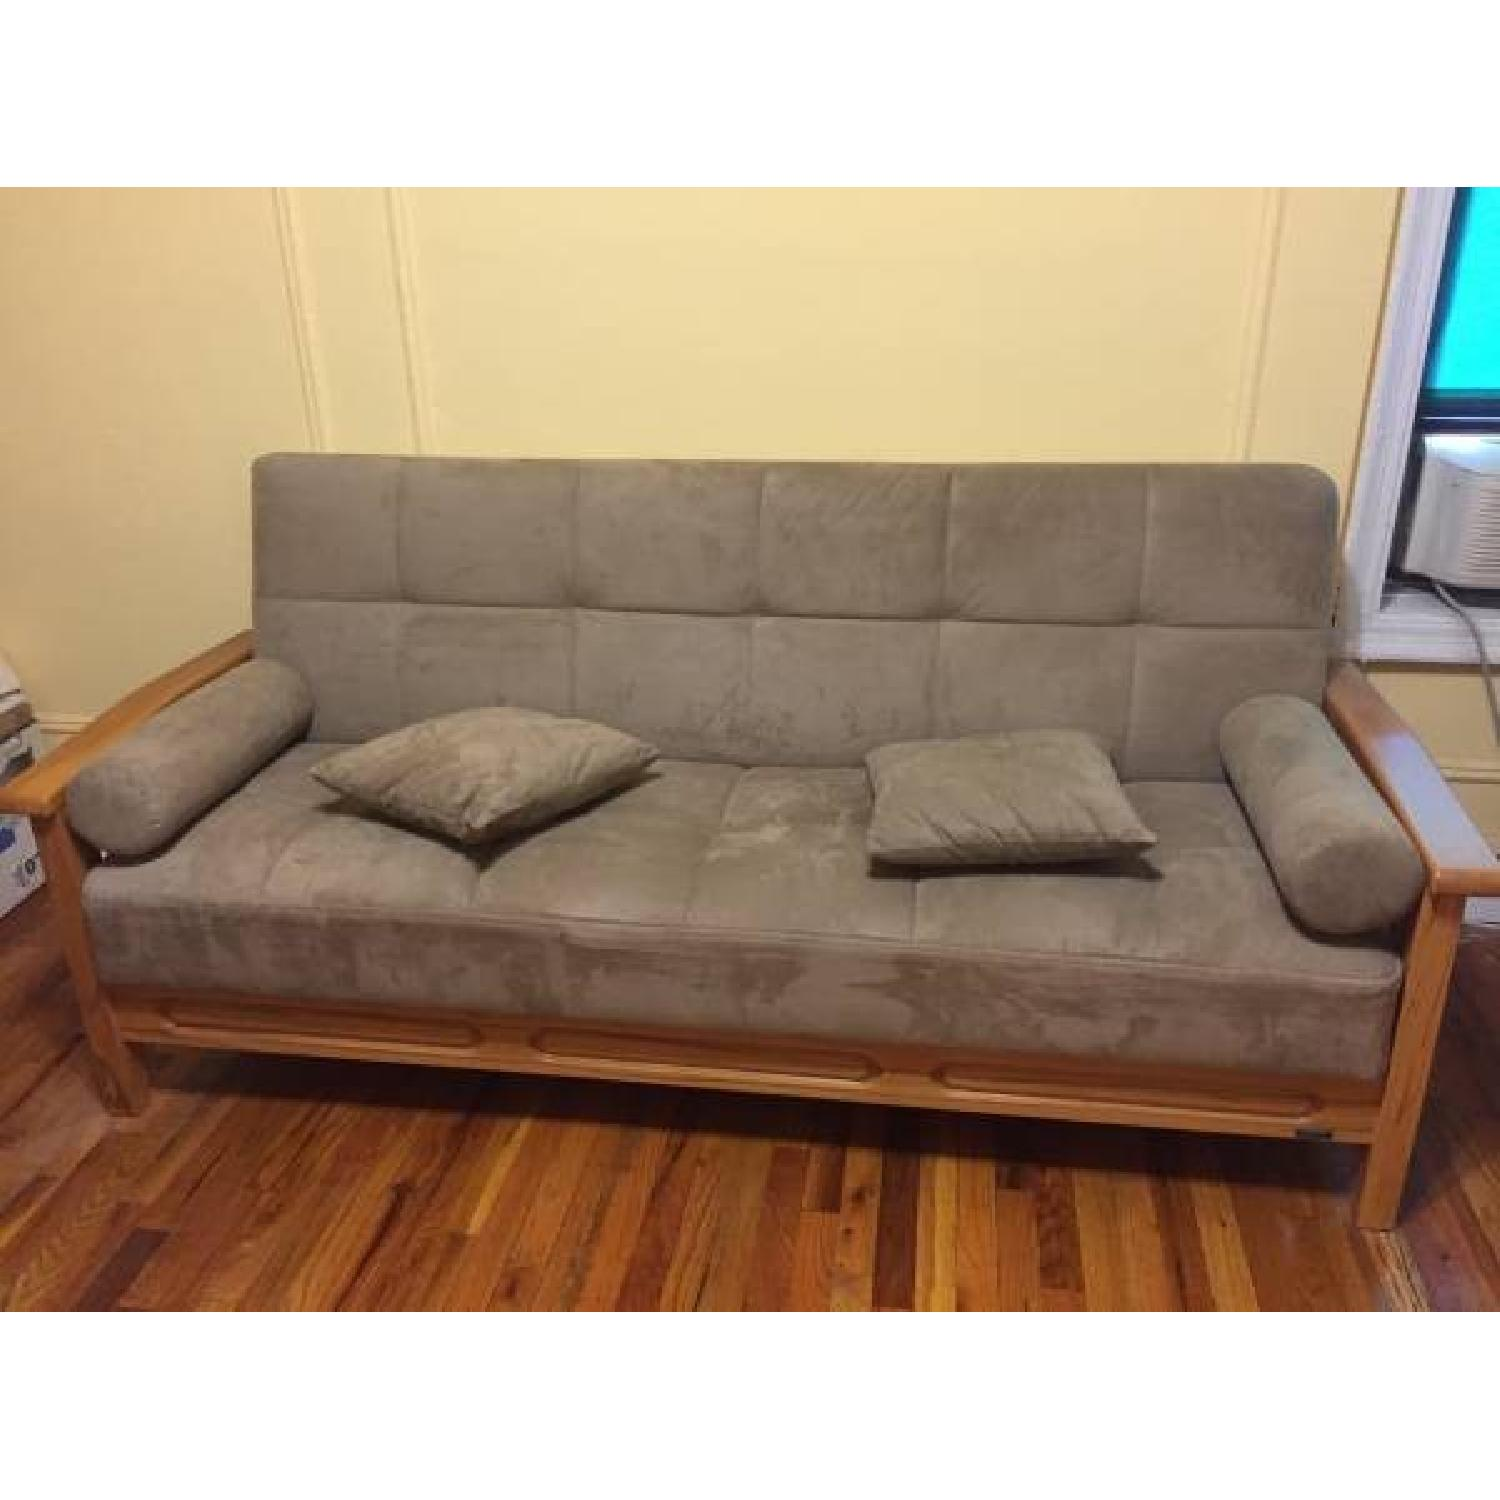 Convert-a-Couch Sofa Bed - image-1